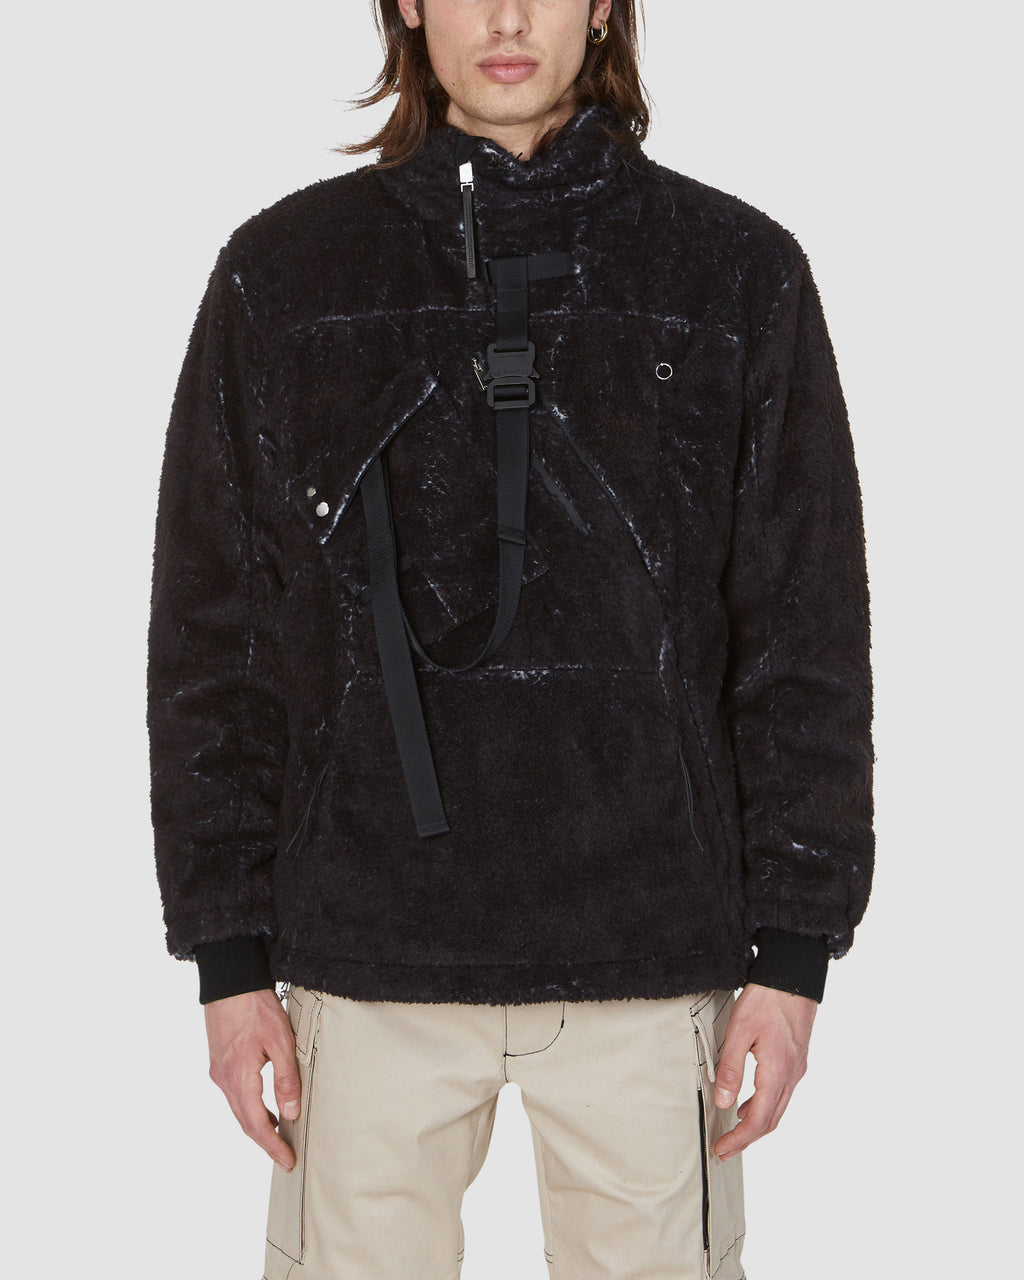 SJ MYLES ZIP POLAR FLEECE